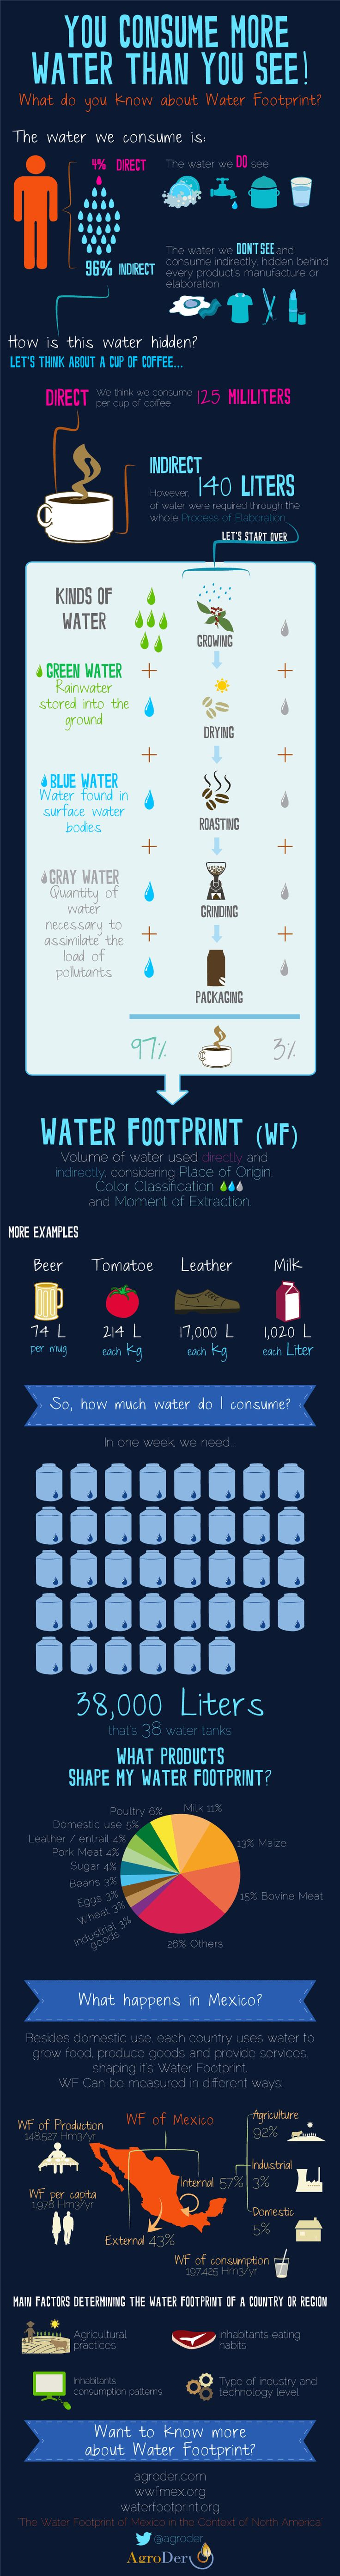 You consume more water than you see! Water Footprint Infographic #Water #Footprint #Infographic